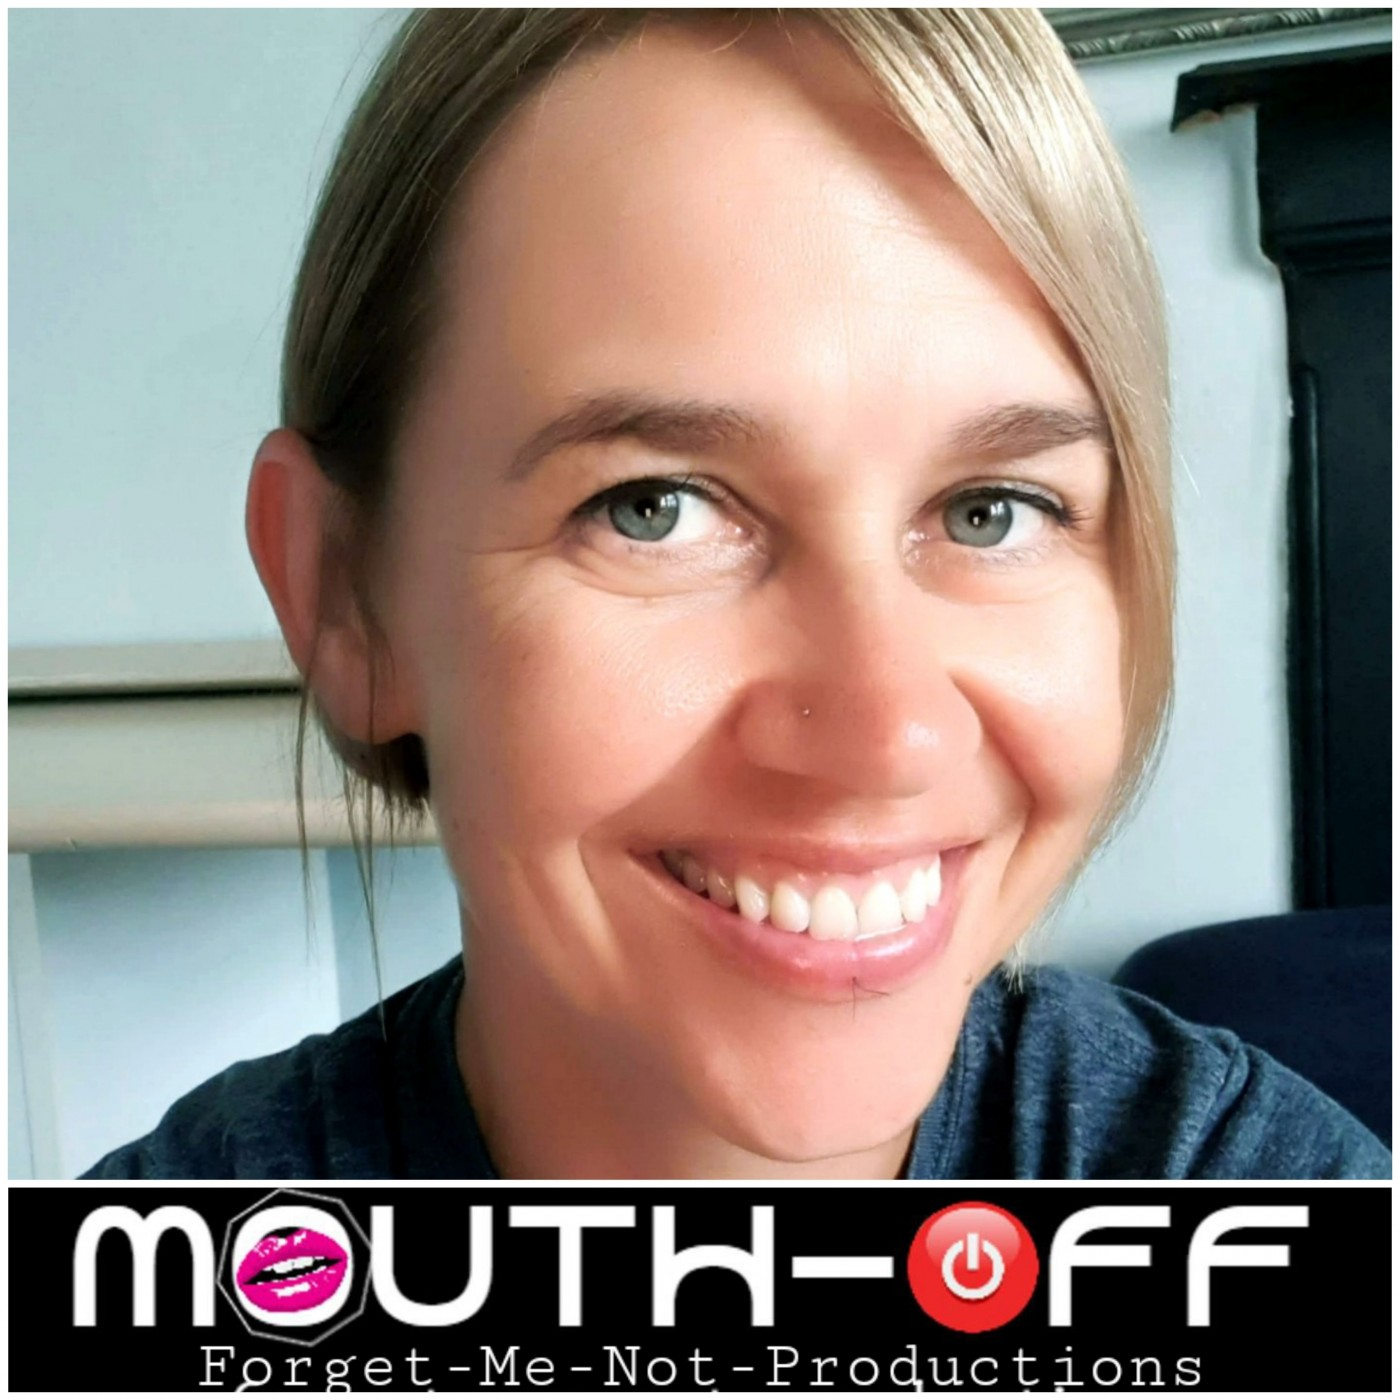 Mouth-Off Episode 19: The Three Principles of Innate Health, Mind, Thought & Consciousness with Sali Curtis